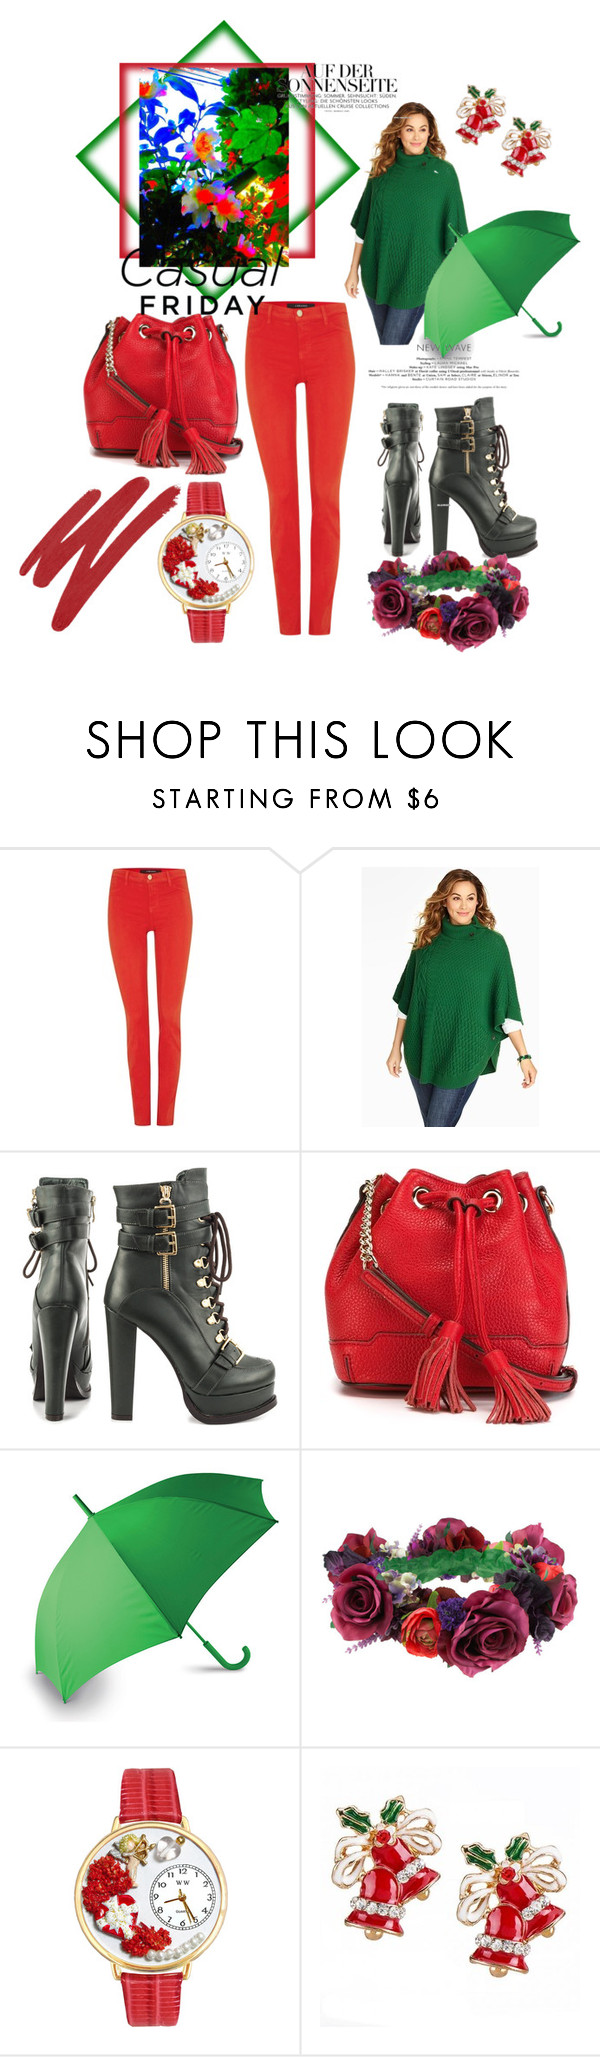 """""""casual"""" by lalle-mila ❤ liked on Polyvore featuring J Brand, Talbots, Luichiny, Rebecca Minkoff, LEXON, Rock 'N Rose, Whimsical Watches, NARS Cosmetics and plus size clothing"""